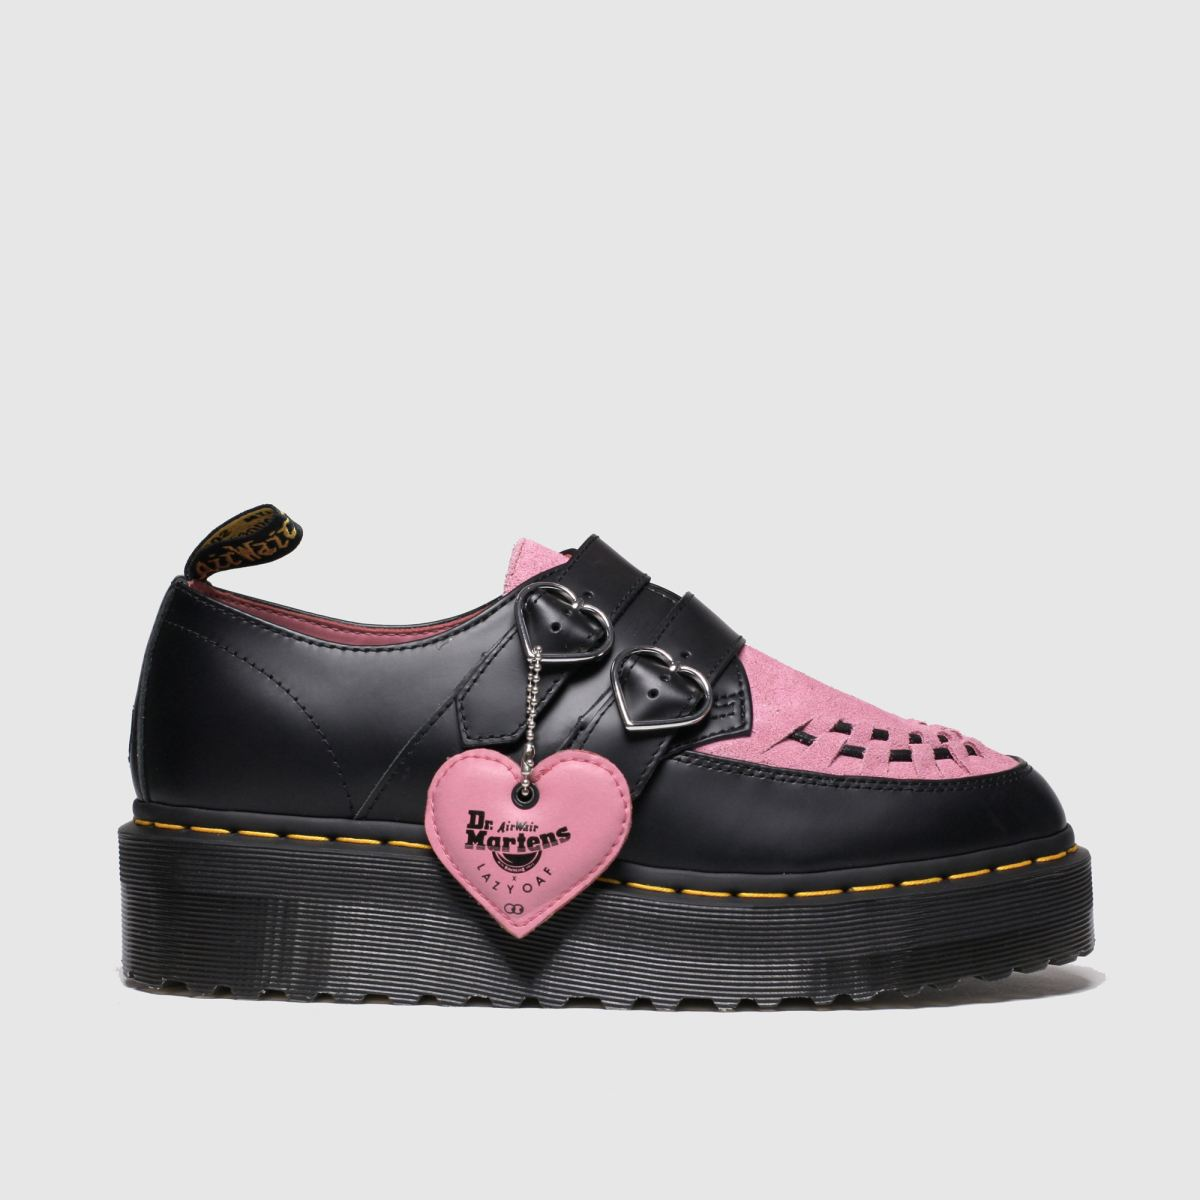 Dr Martens Black & Pink Lazy Oaf Buckle Creeper Lo Flat Shoes